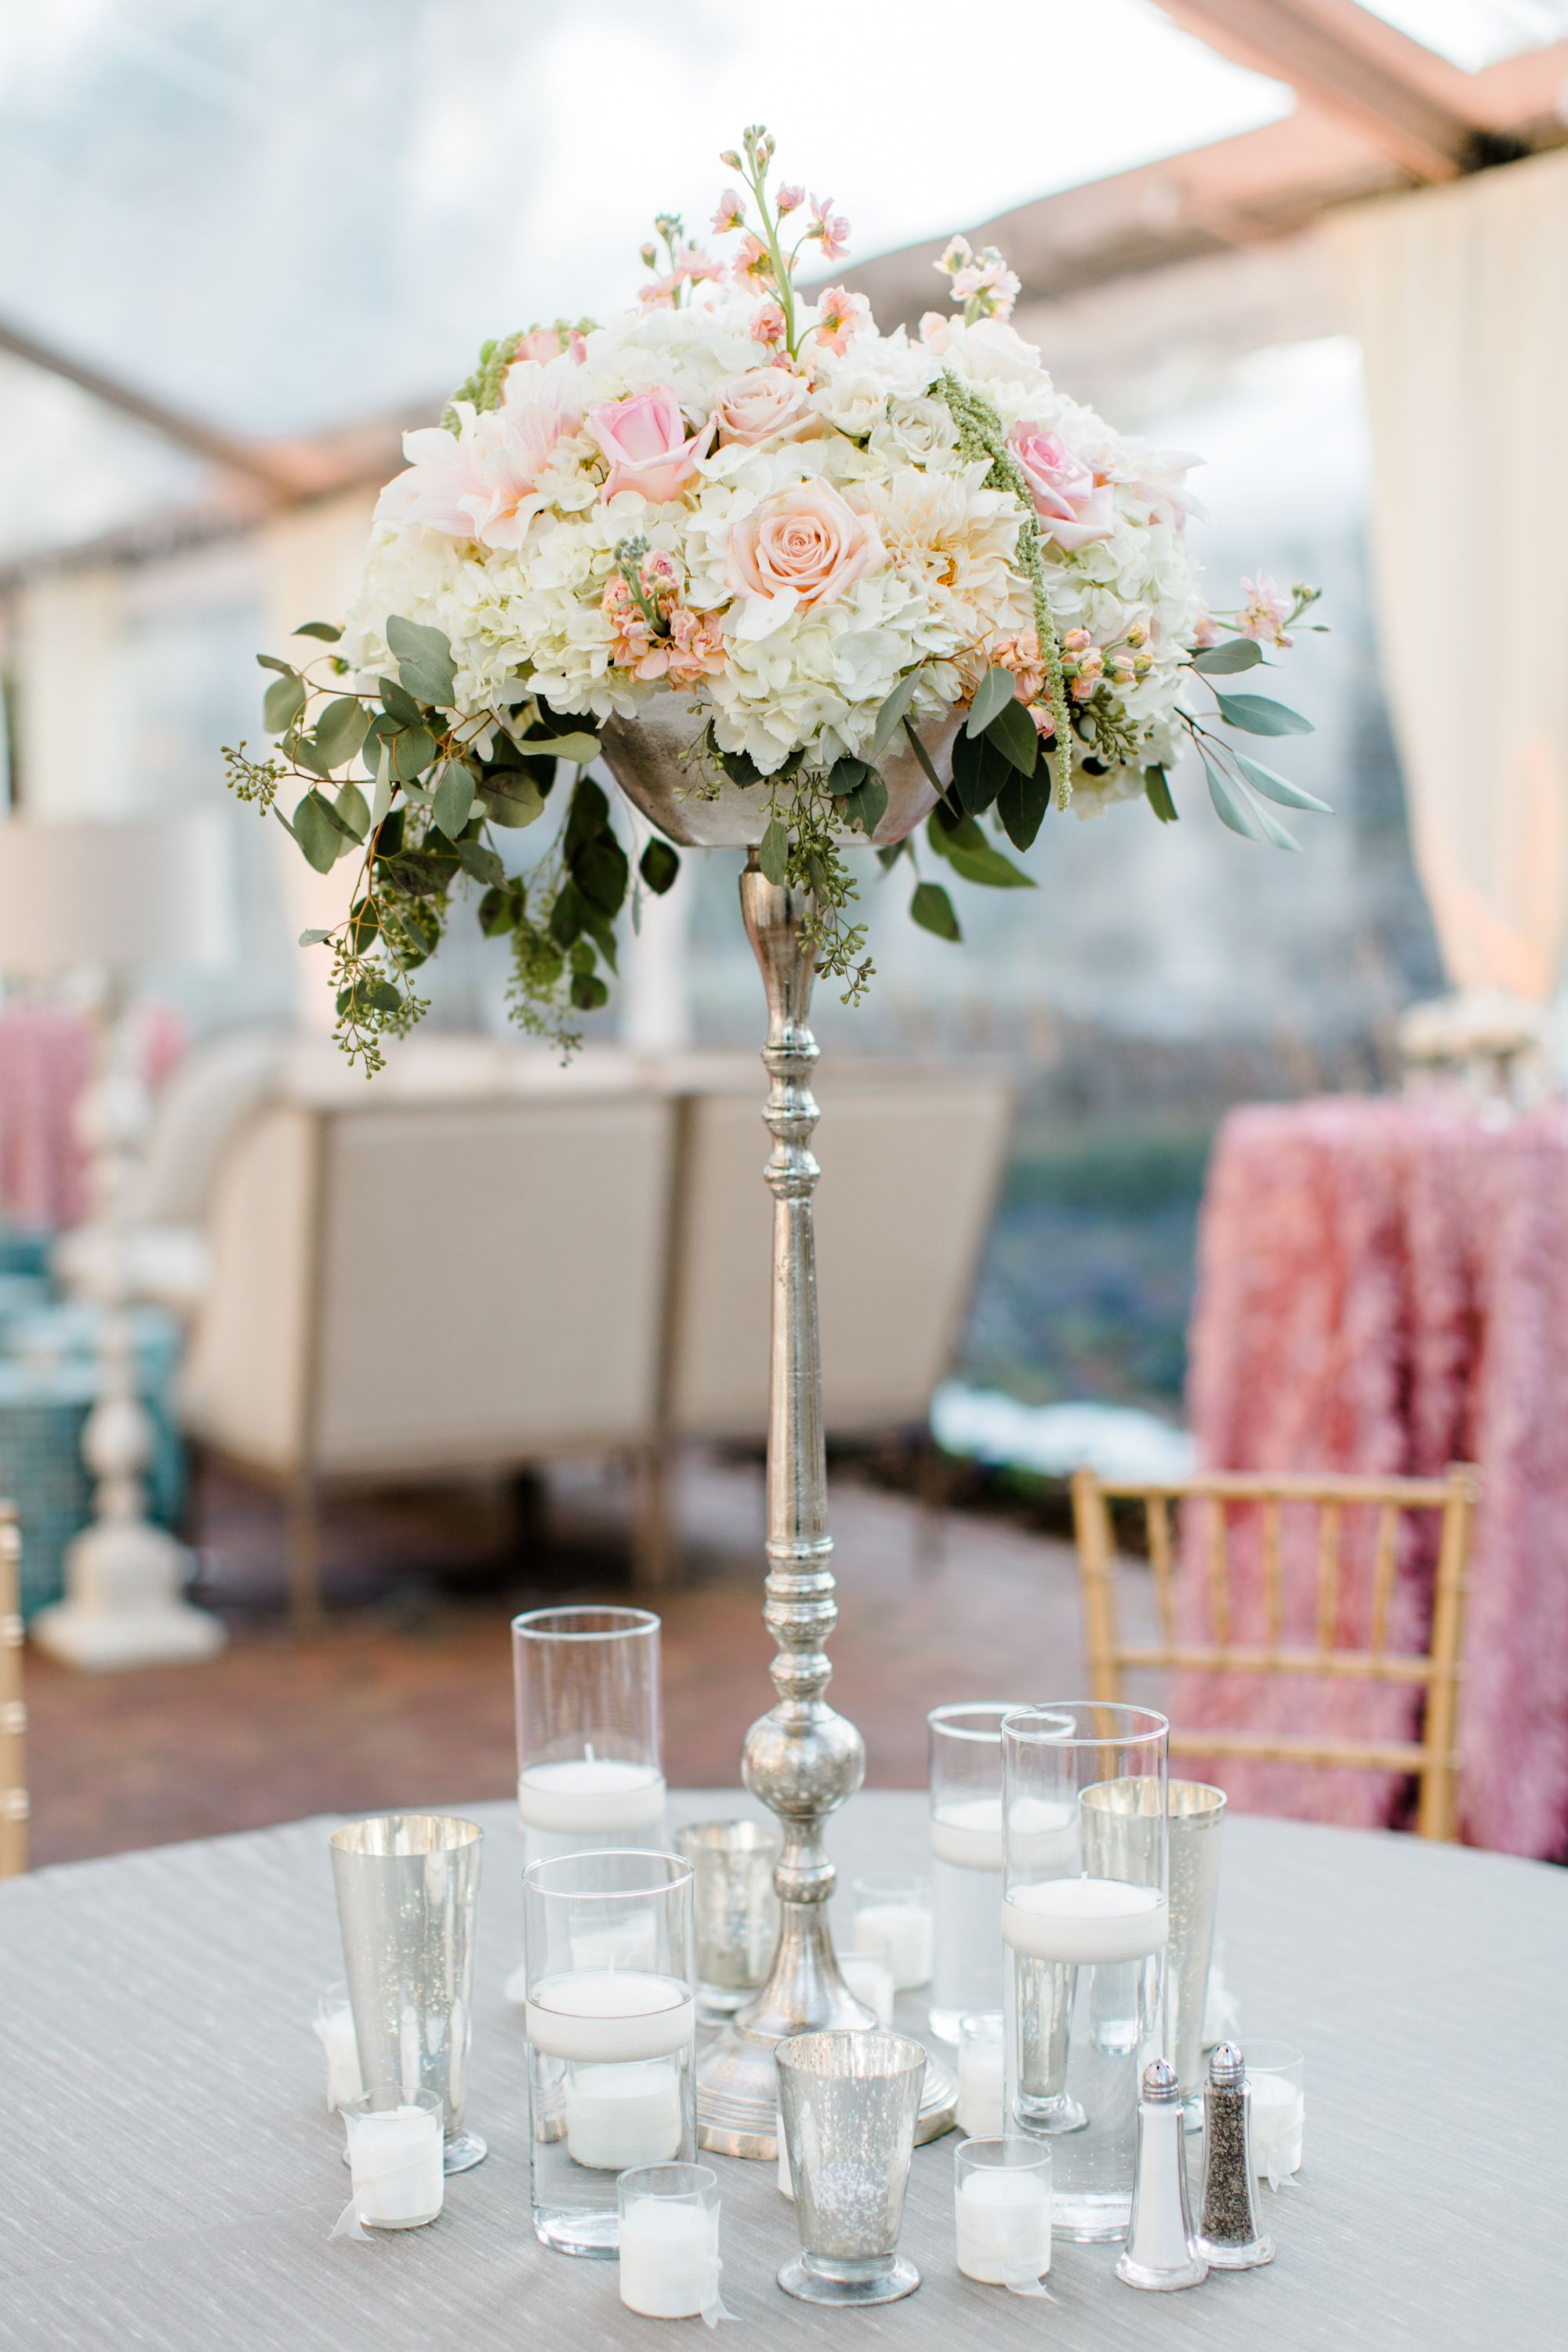 Tall Silver Candelabra Centerpiece with Blush Arrangements